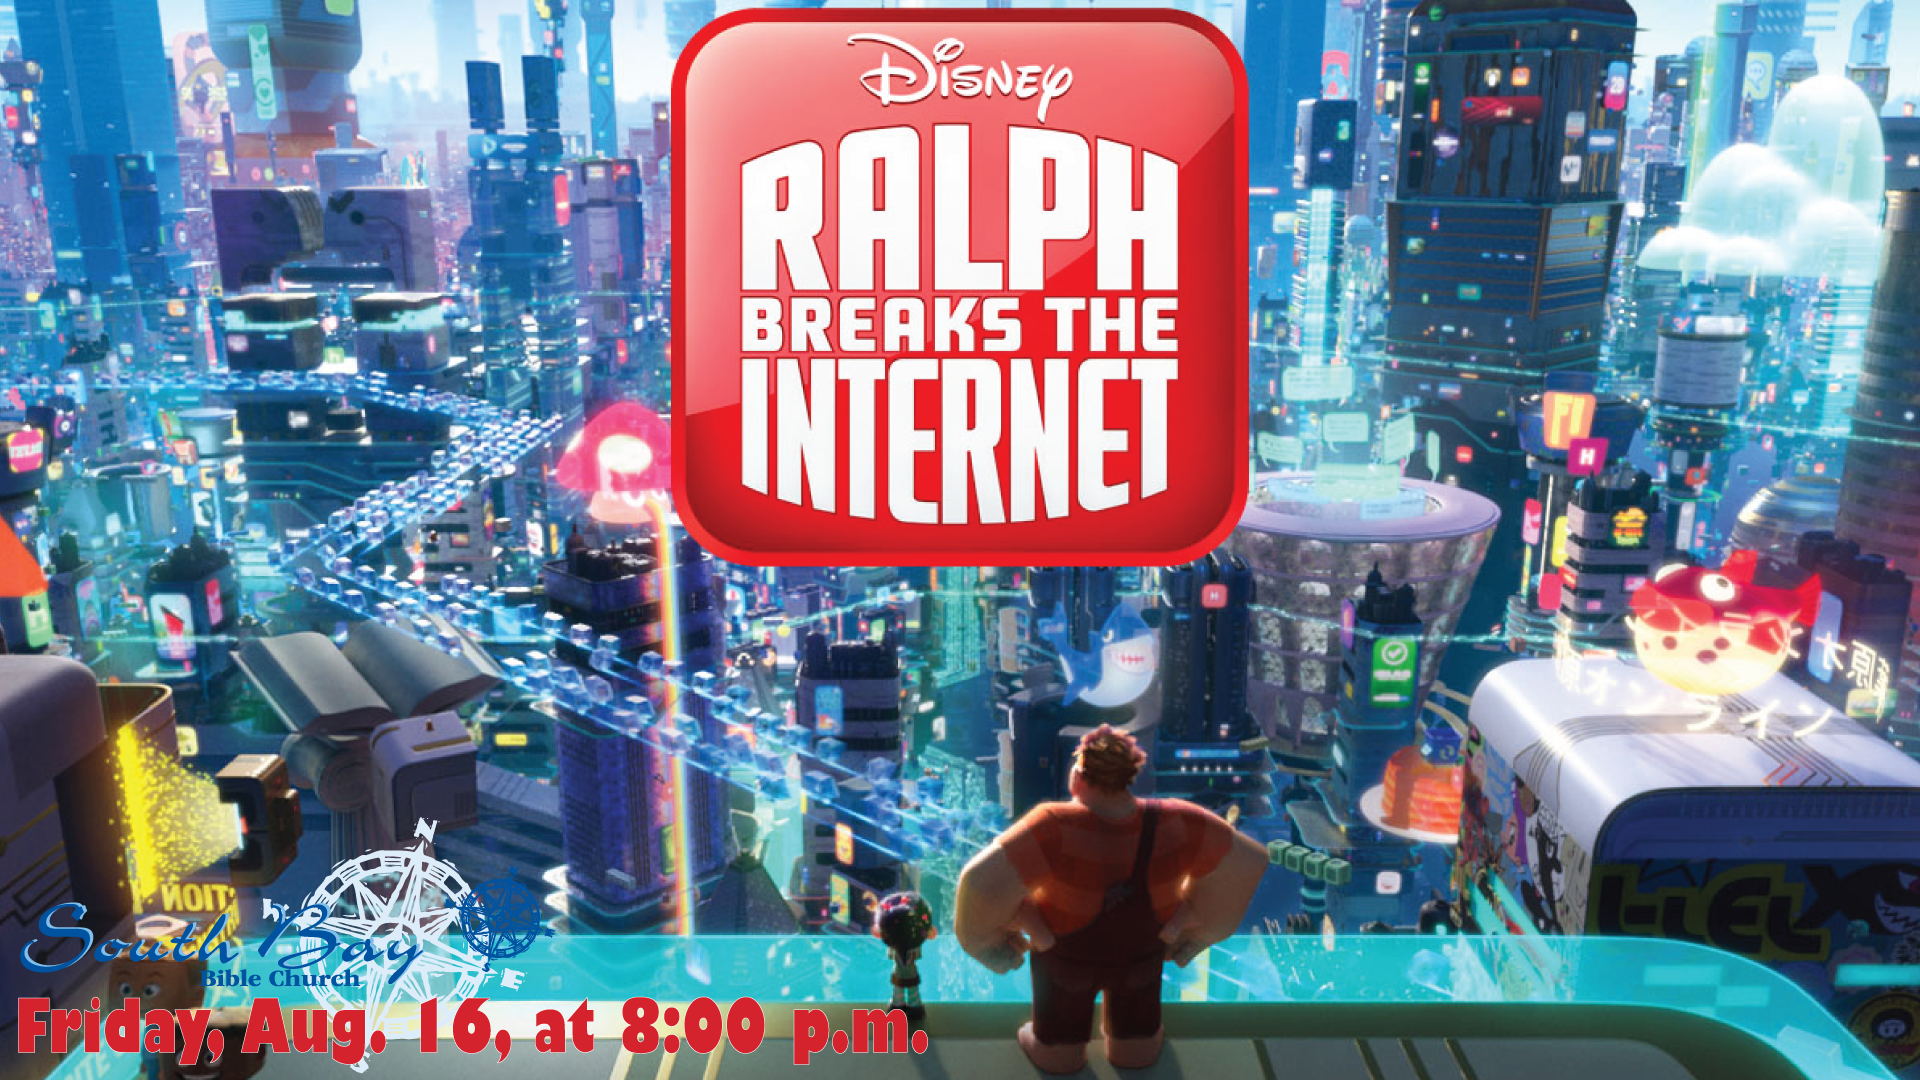 Summer Movie Night: Ralph Breaks the Internet, Friday, August 16, 8:00 p.m.